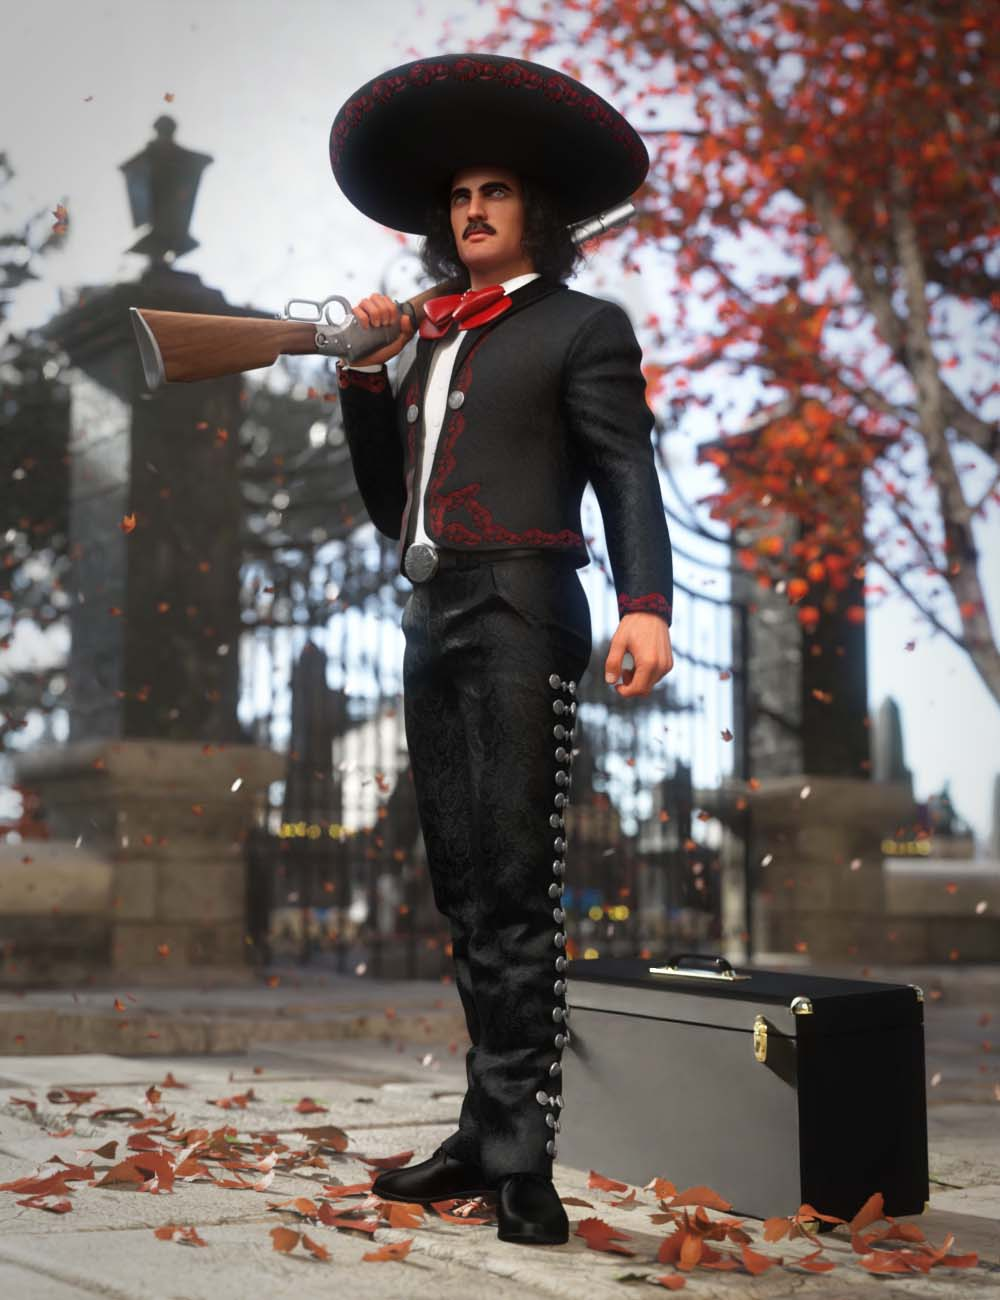 Mariachi Outfit for Genesis 8 and 8.1 Males by: MadaAnna Benjamin, 3D Models by Daz 3D